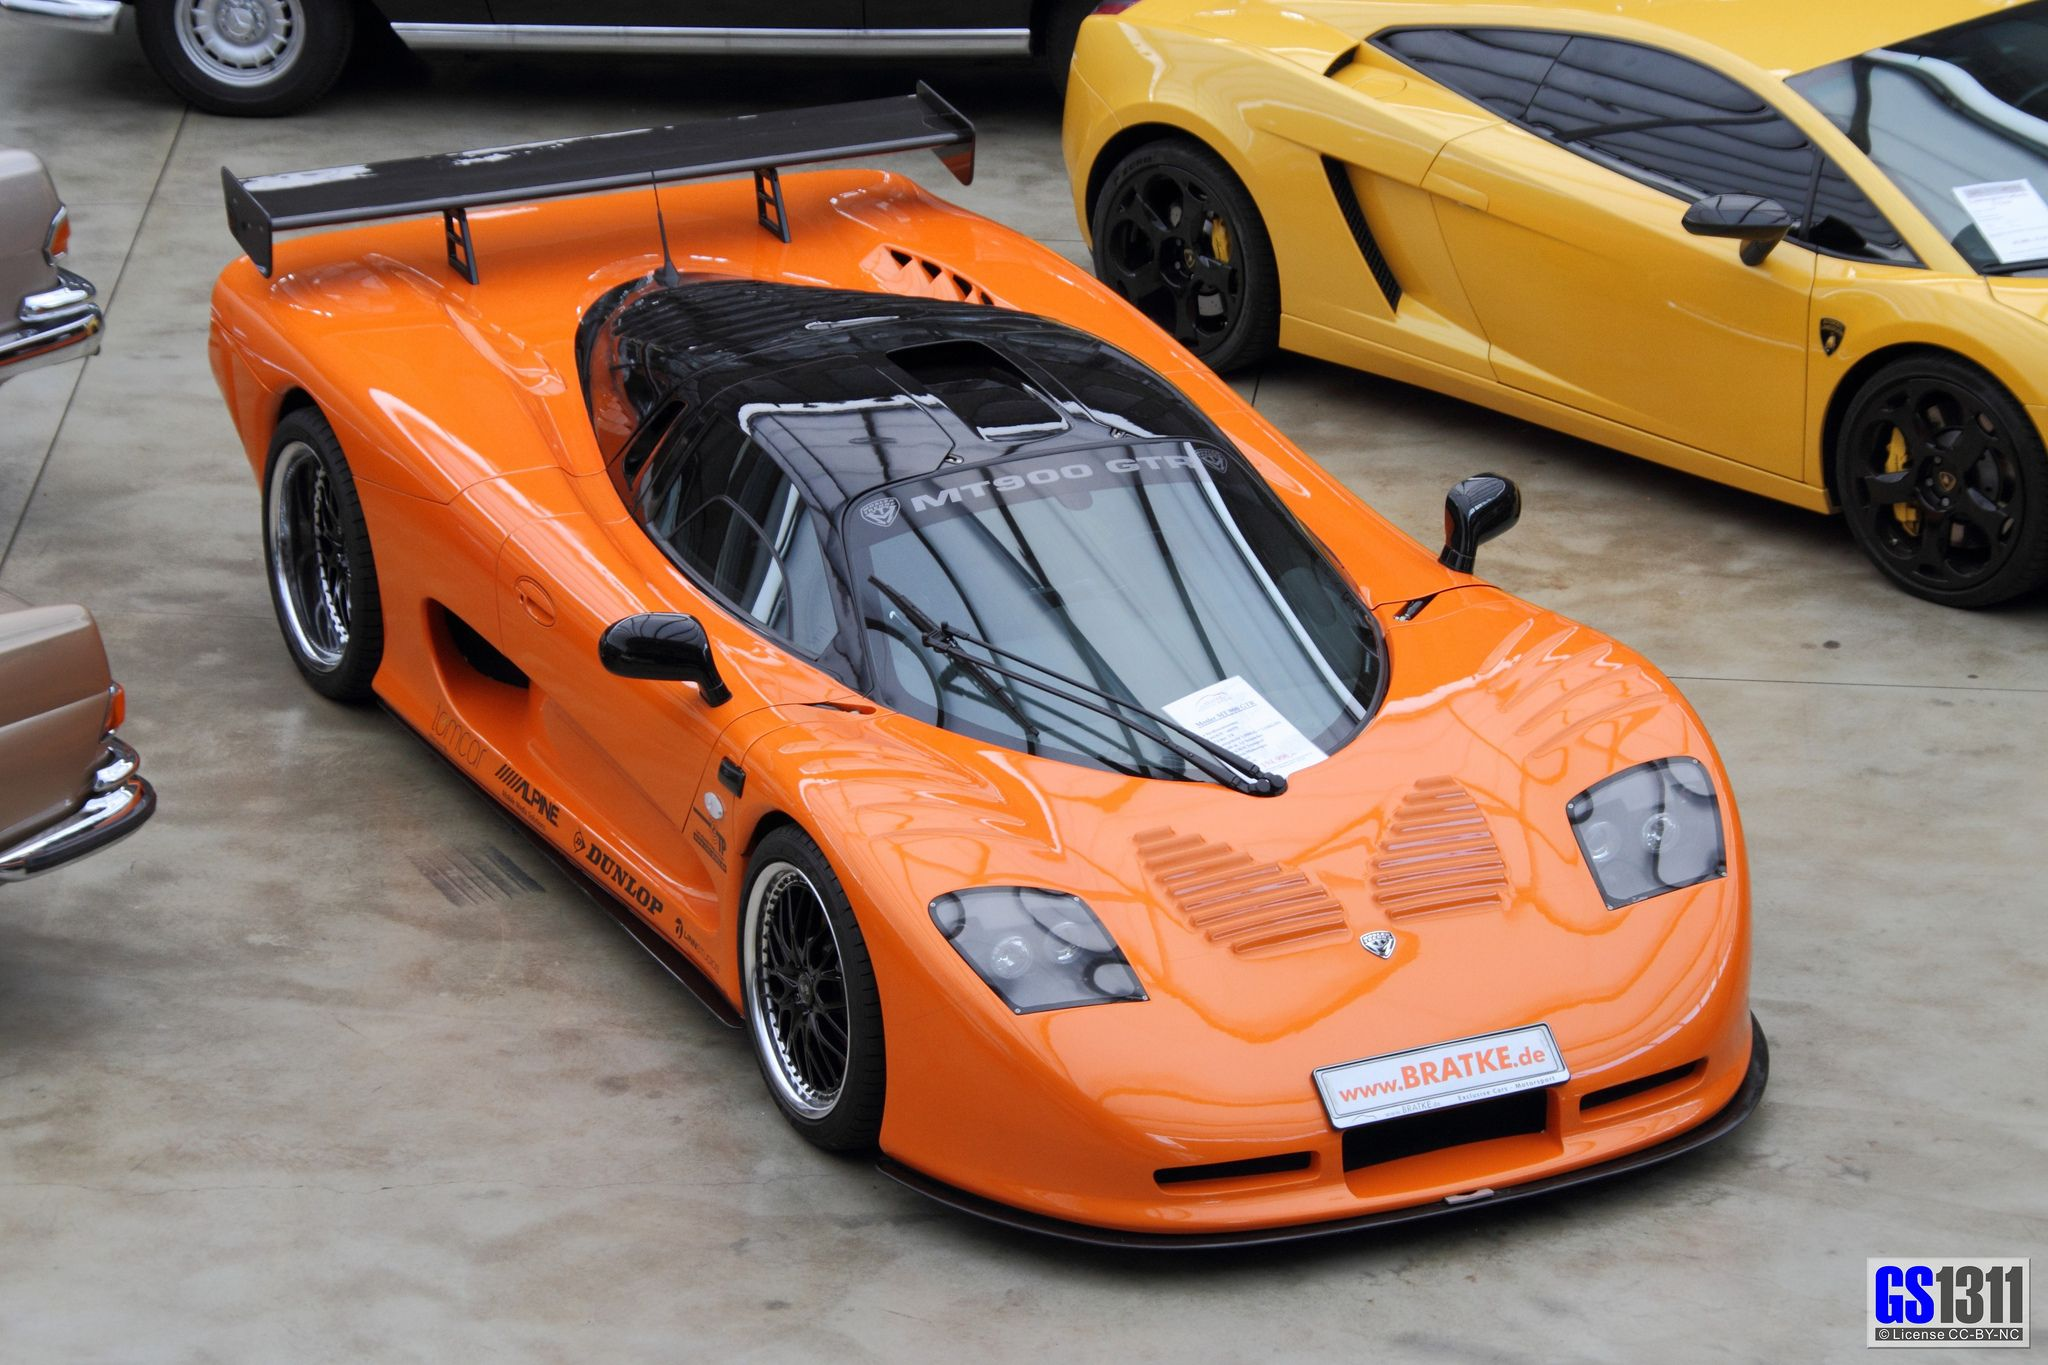 2001 2011 Mosler Mt900 Gtr Super Cars Sports Cars Cool Cars